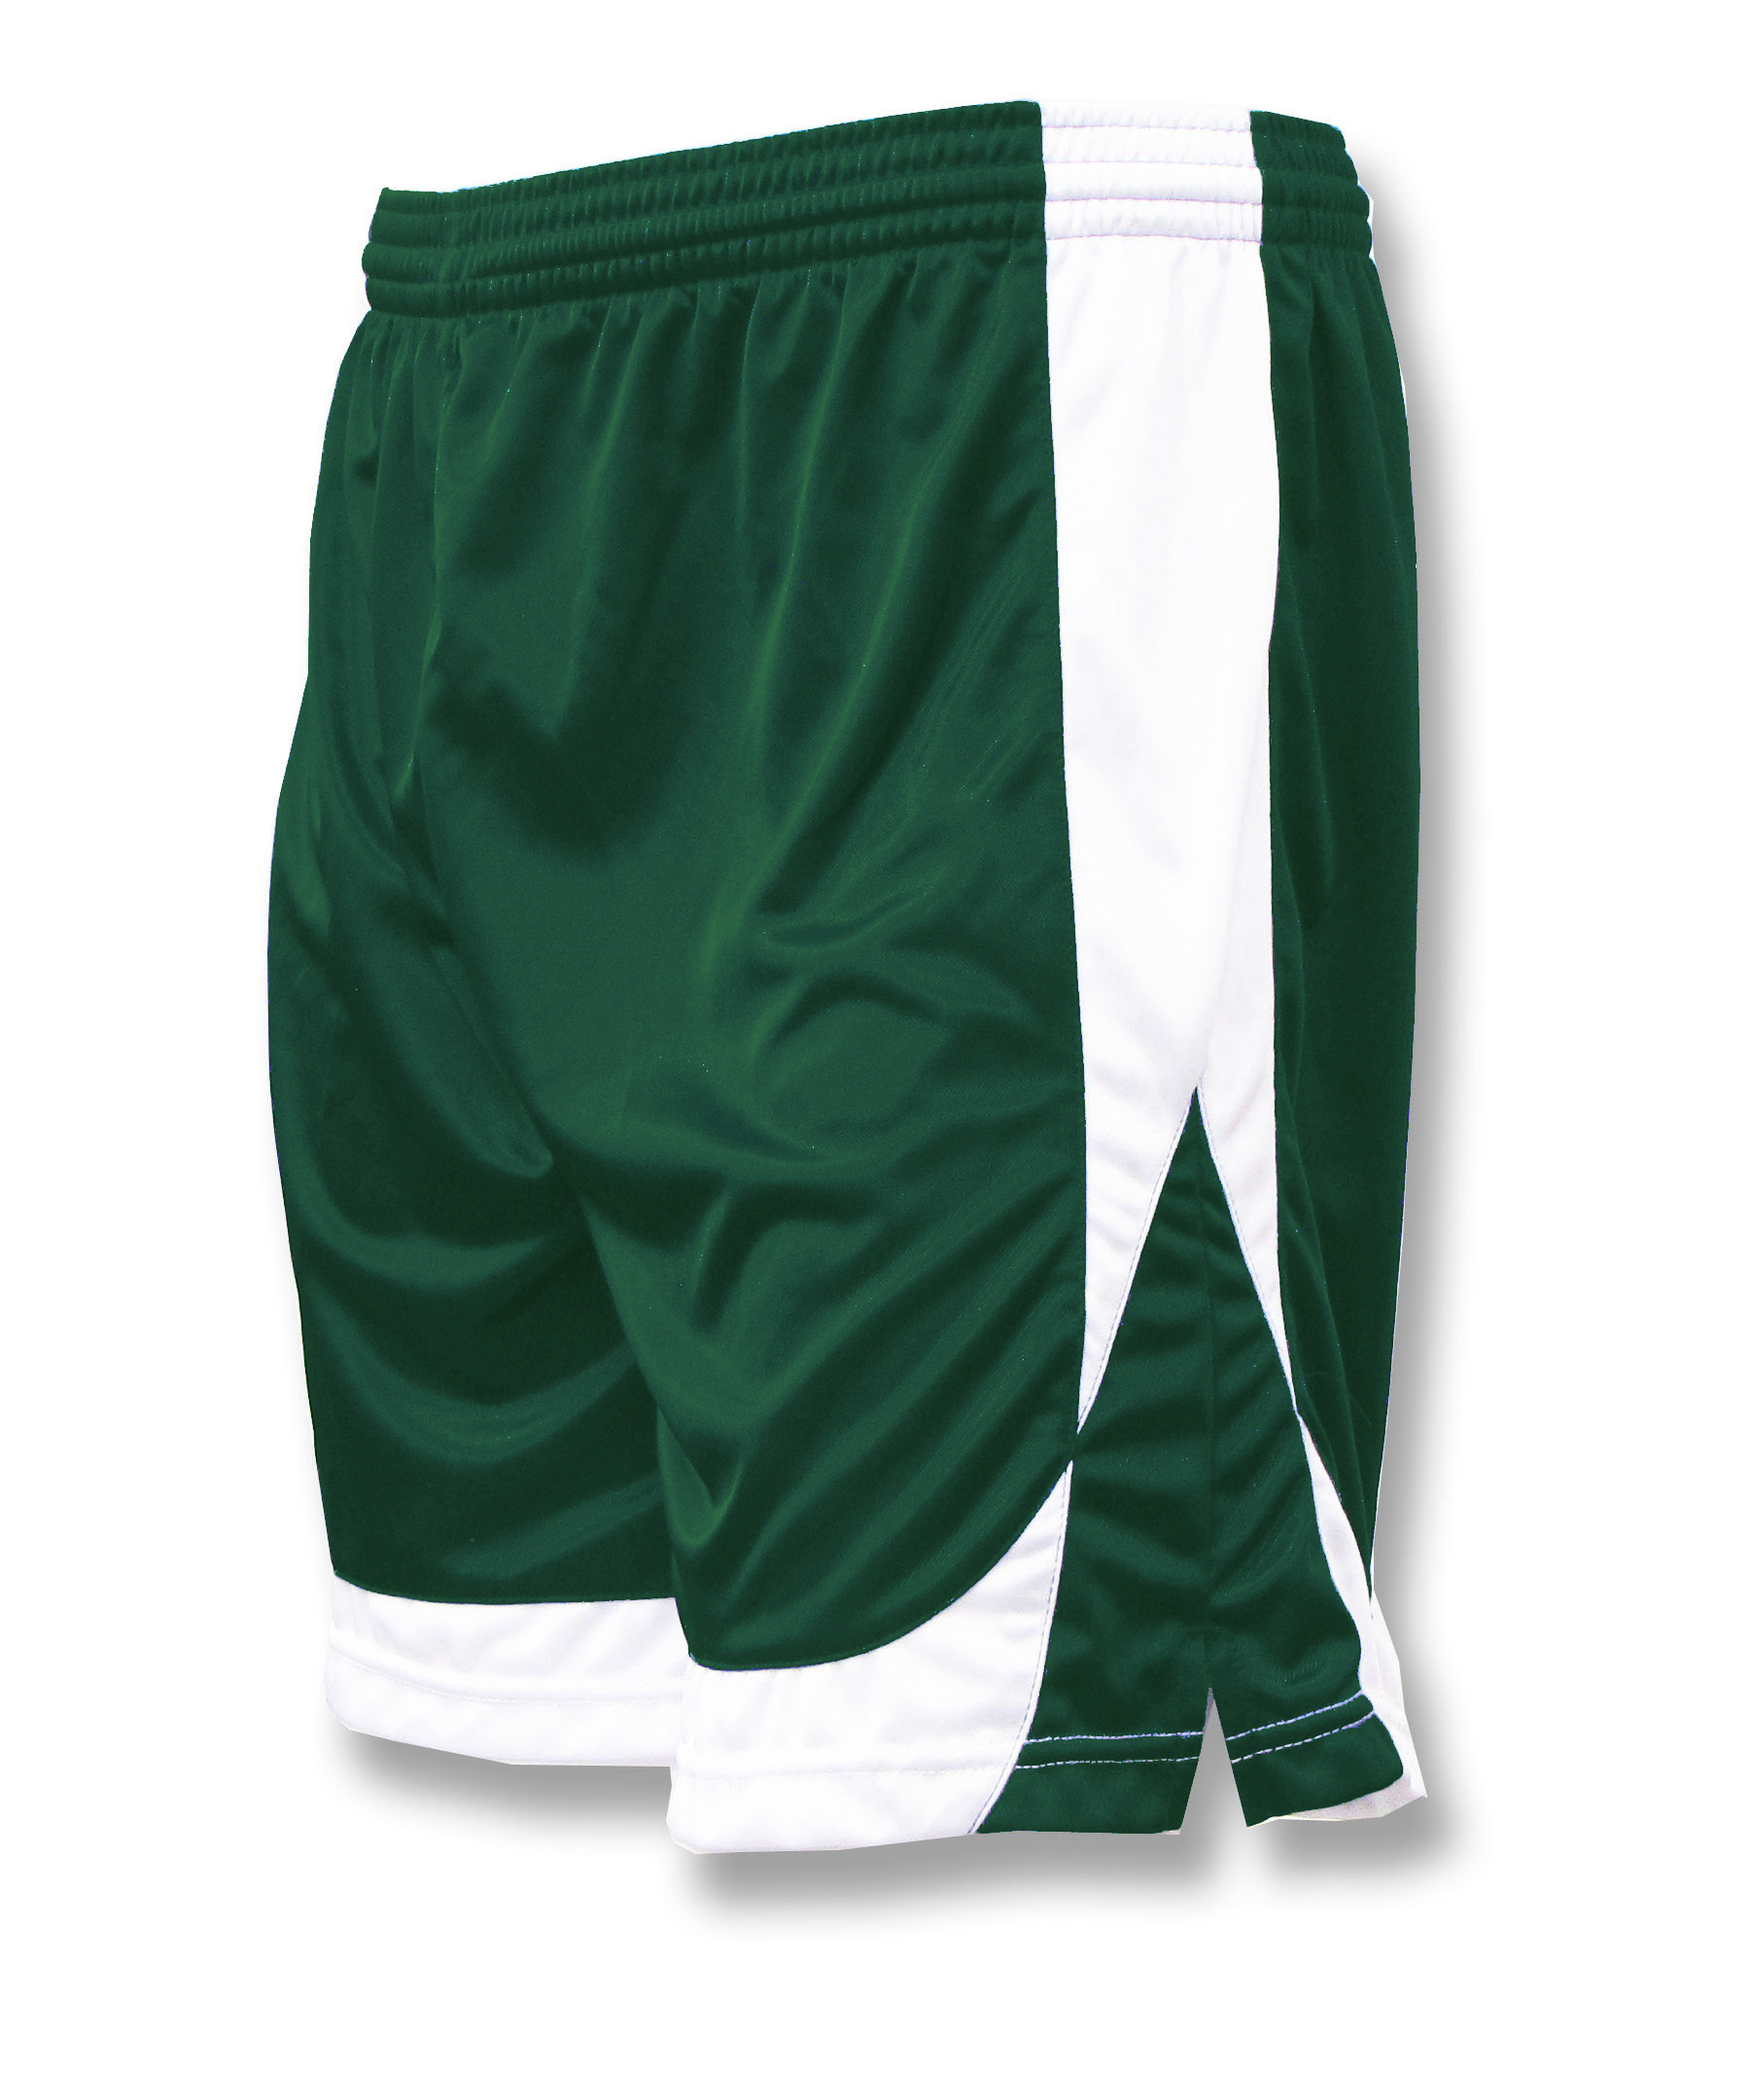 Omega soccer shorts in forest/white by Code Four Athletics